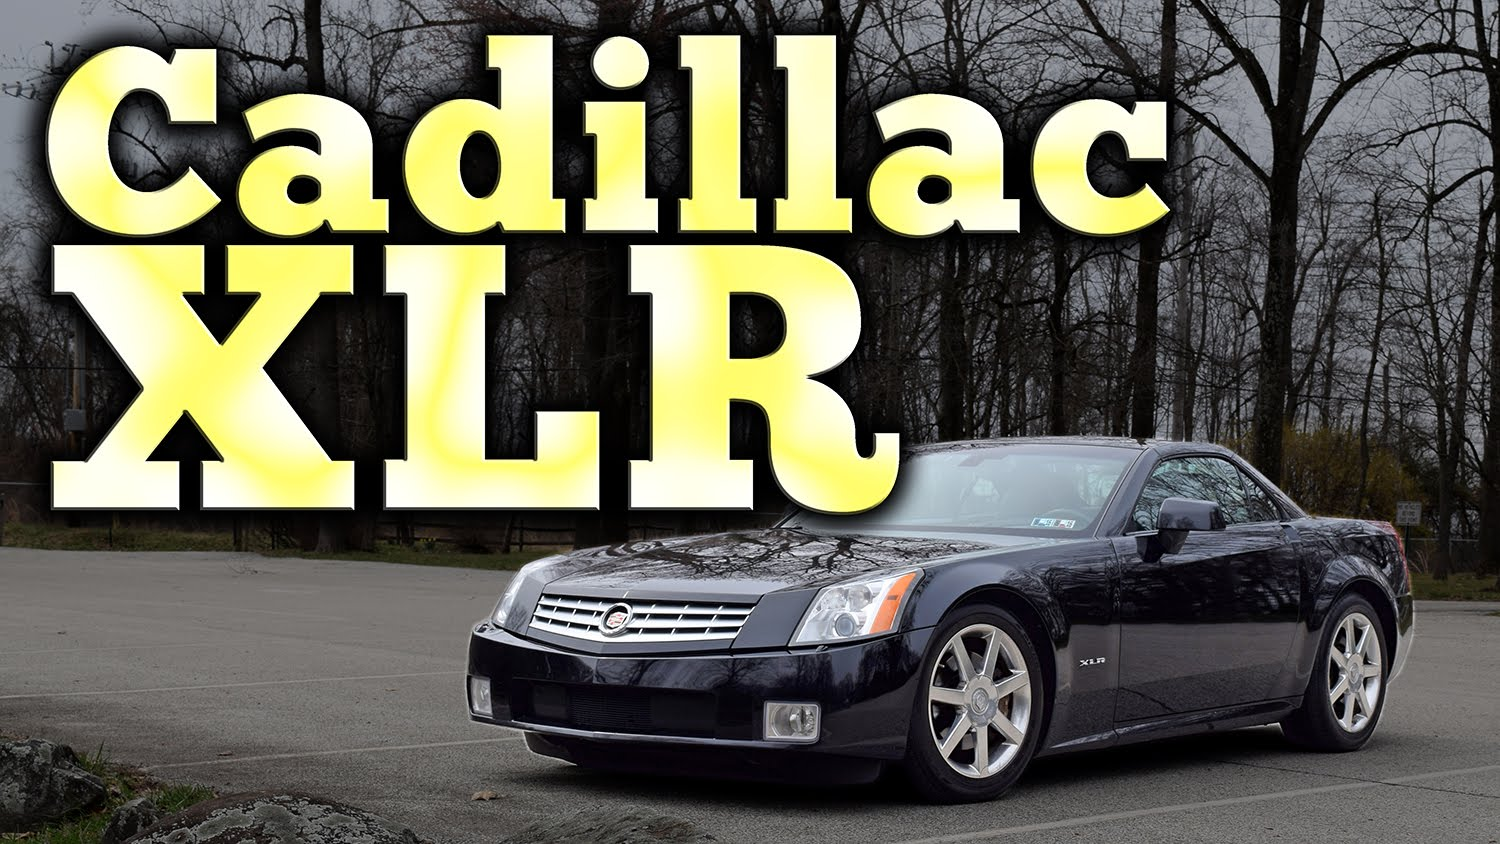 Regular Car Reviews Looks At Cadillac XLR, Explains Why It Sucks